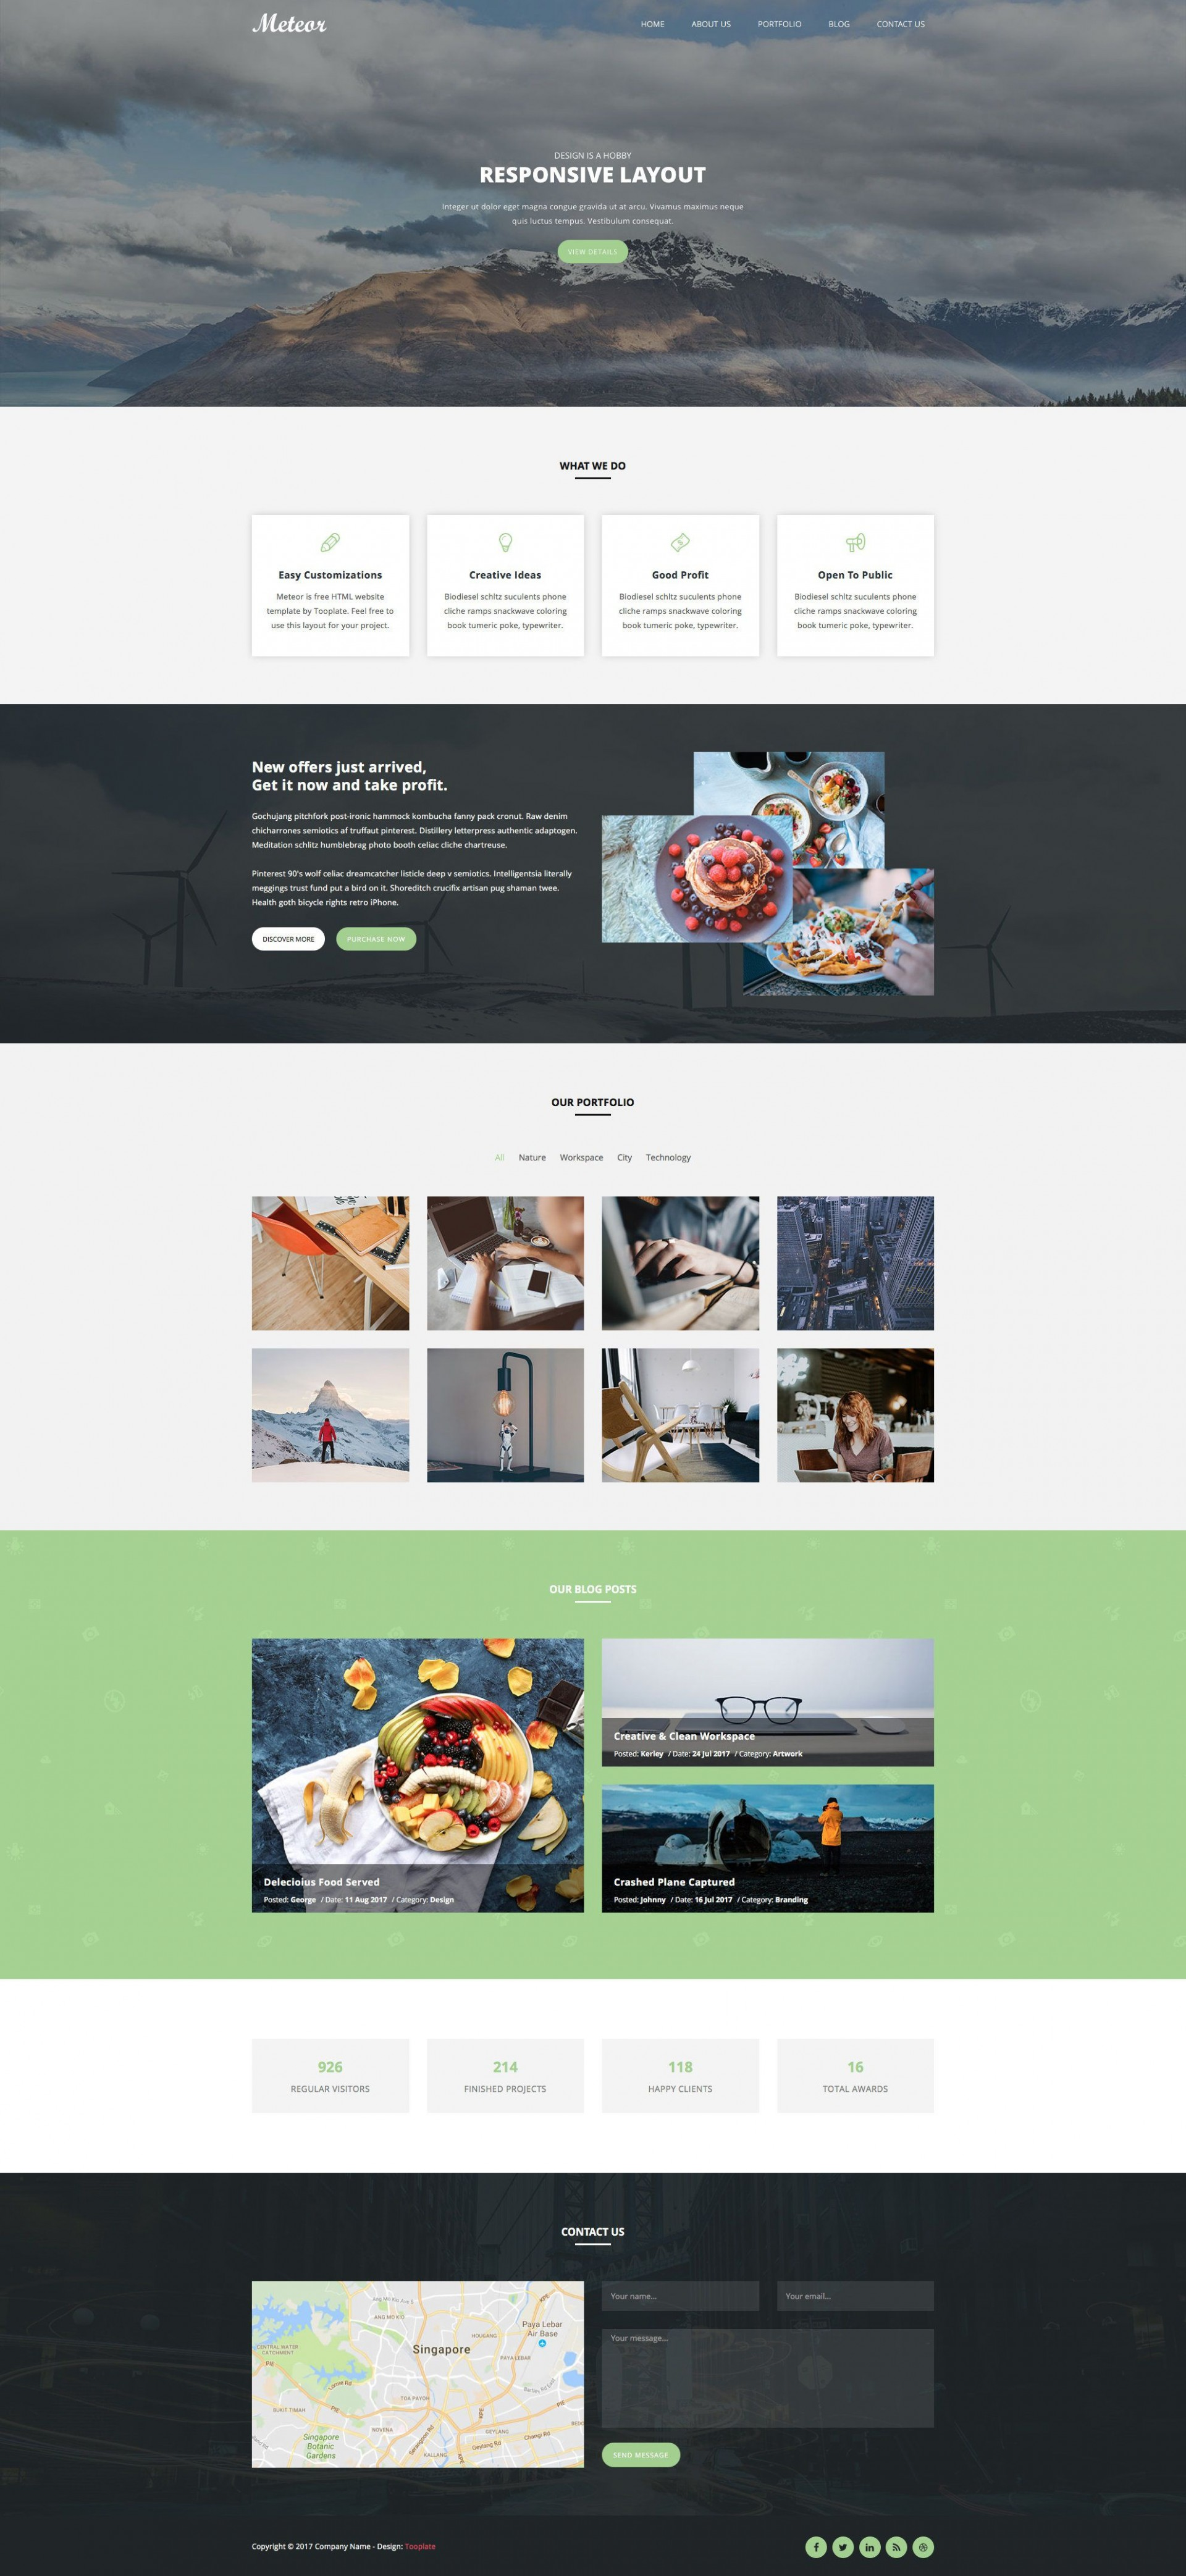 004 Unusual One Page Website Template Html5 Responsive Free Download Highest Clarity 1920